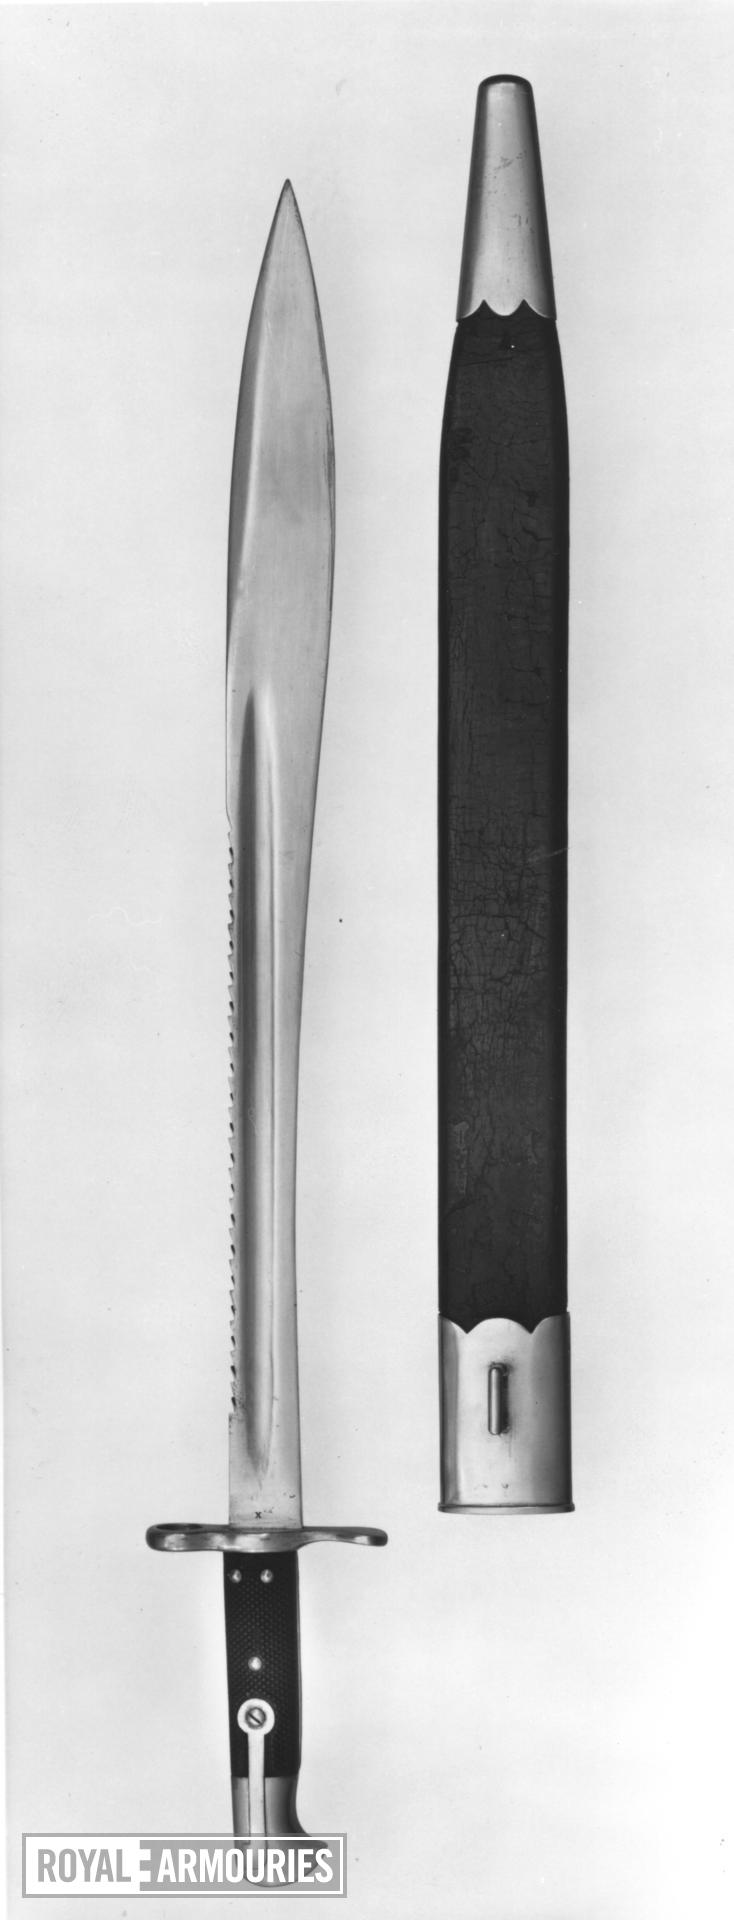 Bayonet and scabbard Elcho bayonet & scabbard for Martini Henry